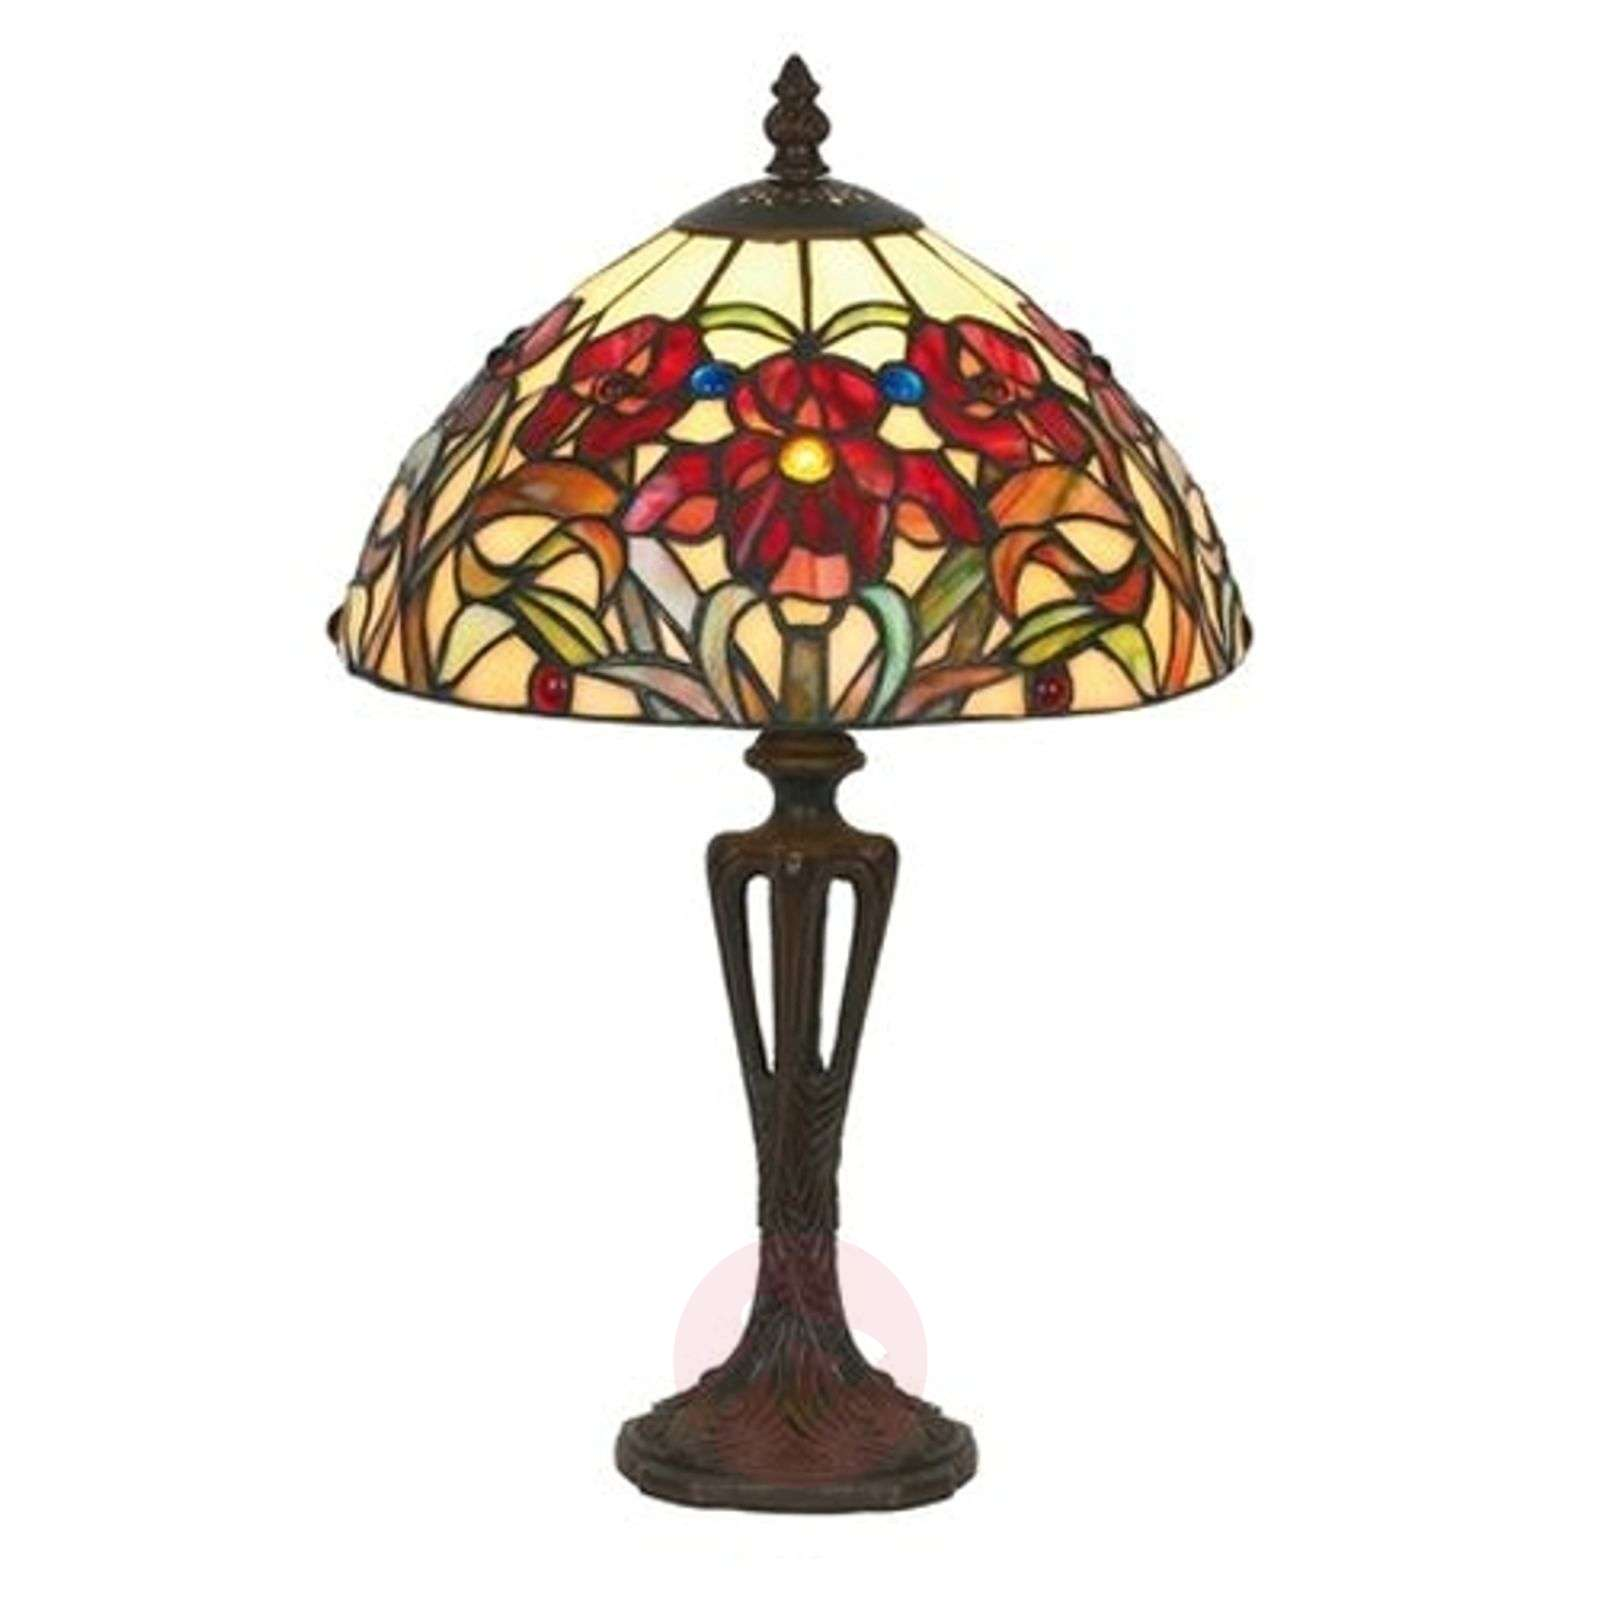 ELINE classic Tiffany style table lamp, 40 cm-1032169-01